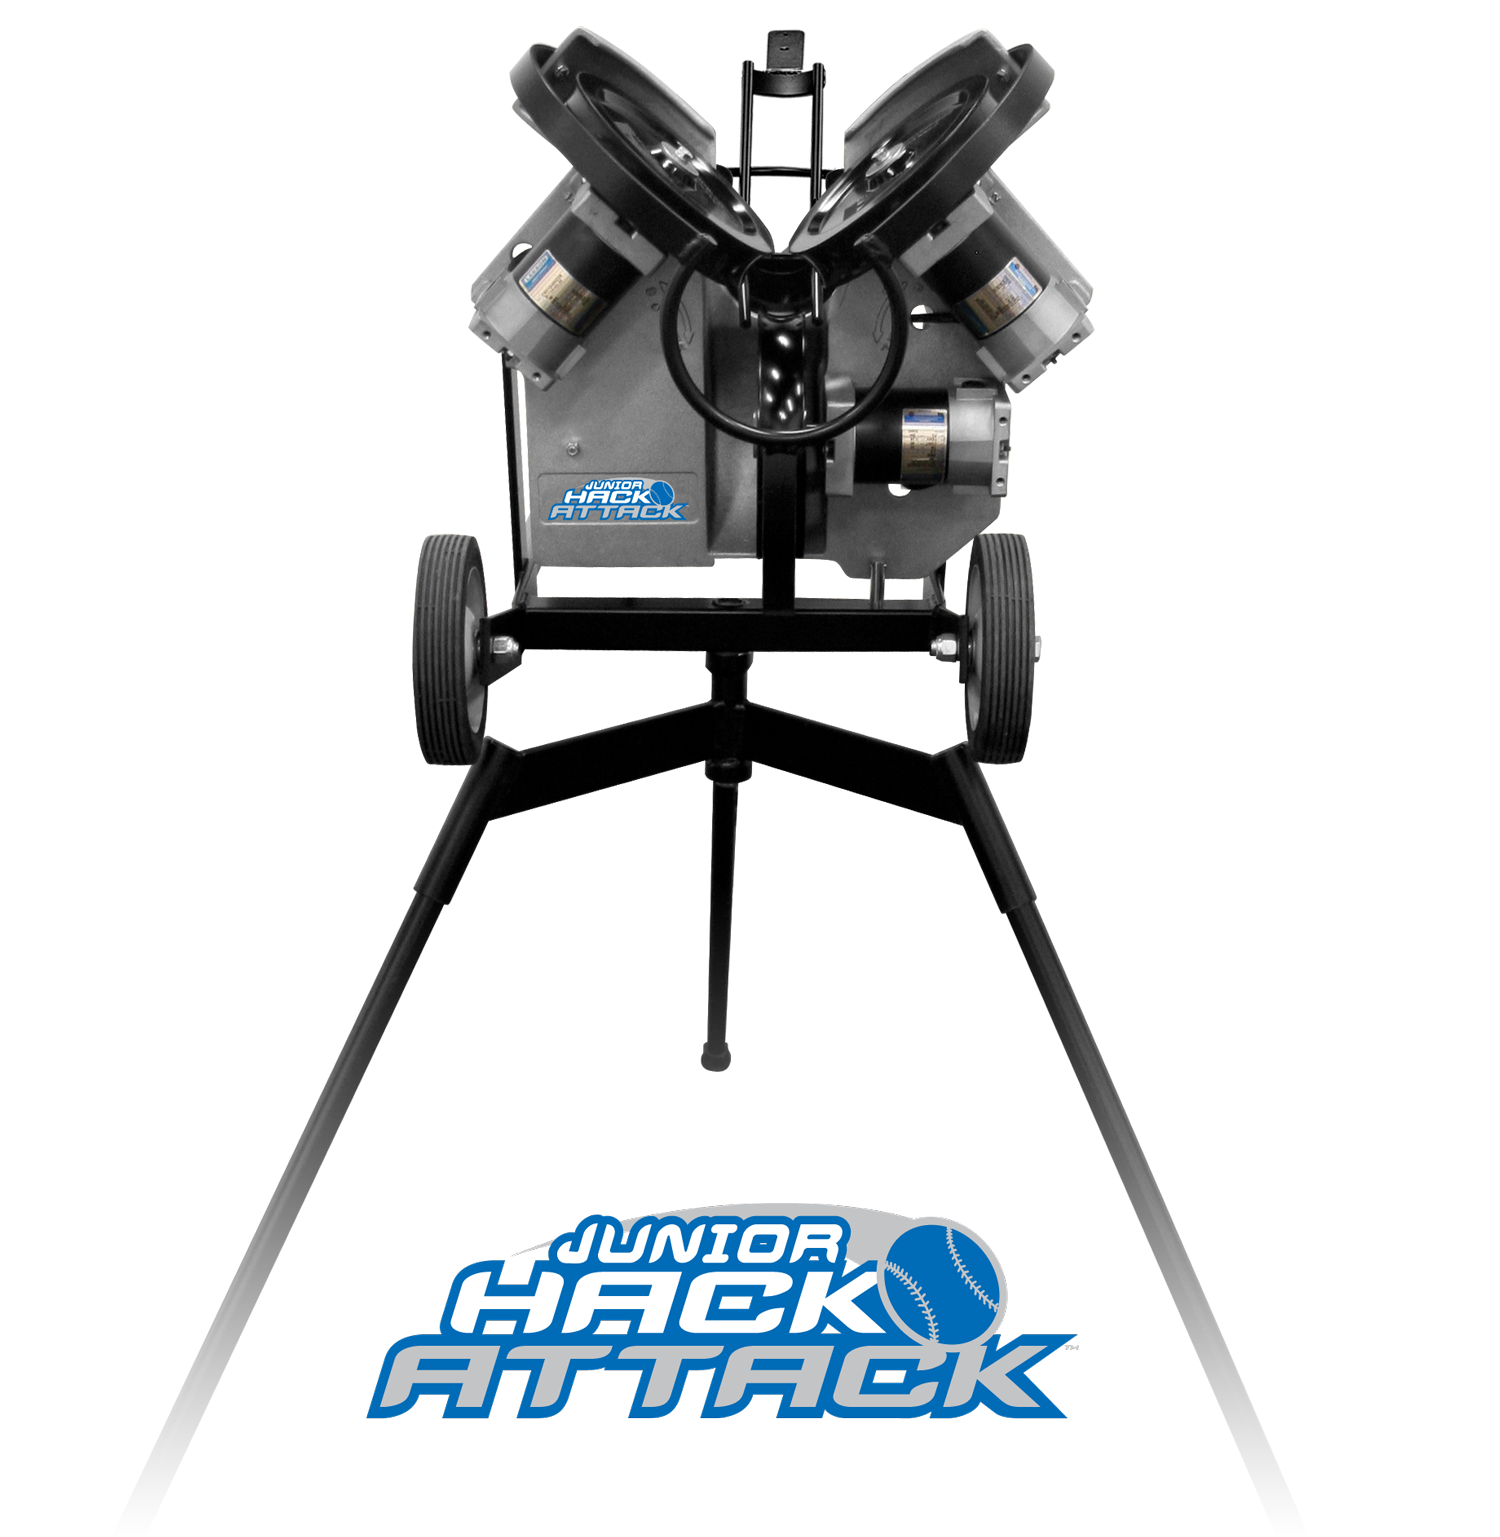 Junior Hack Attack Baseball Pitching Machine Features